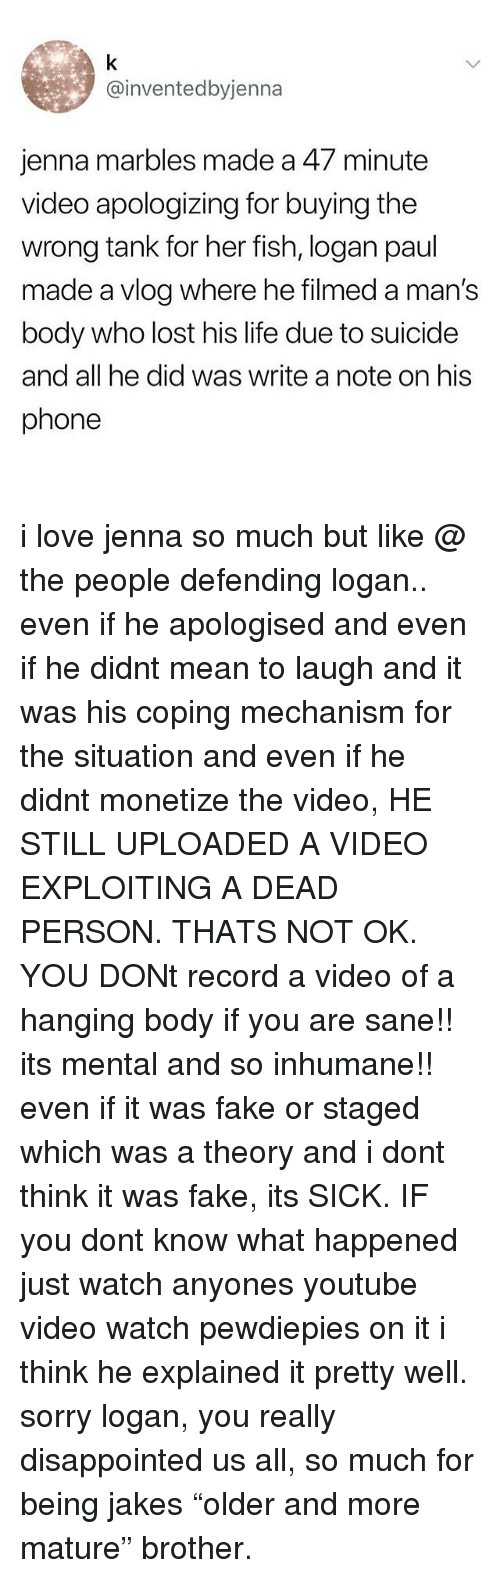 "Disappointed, Fake, and Life: @inventedbyjenna  jenna marbles made a 47 minute  video apologizing for buying the  wrong tank for her fish, logan paul  made a vlog where he filmed a man's  body who lost his life due to suicide  and all he did was write a note on his  phone i love jenna so much but like @ the people defending logan.. even if he apologised and even if he didnt mean to laugh and it was his coping mechanism for the situation and even if he didnt monetize the video, HE STILL UPLOADED A VIDEO EXPLOITING A DEAD PERSON. THATS NOT OK. YOU DONt record a video of a hanging body if you are sane!! its mental and so inhumane!! even if it was fake or staged which was a theory and i dont think it was fake, its SICK. IF you dont know what happened just watch anyones youtube video watch pewdiepies on it i think he explained it pretty well. sorry logan, you really disappointed us all, so much for being jakes ""older and more mature"" brother."